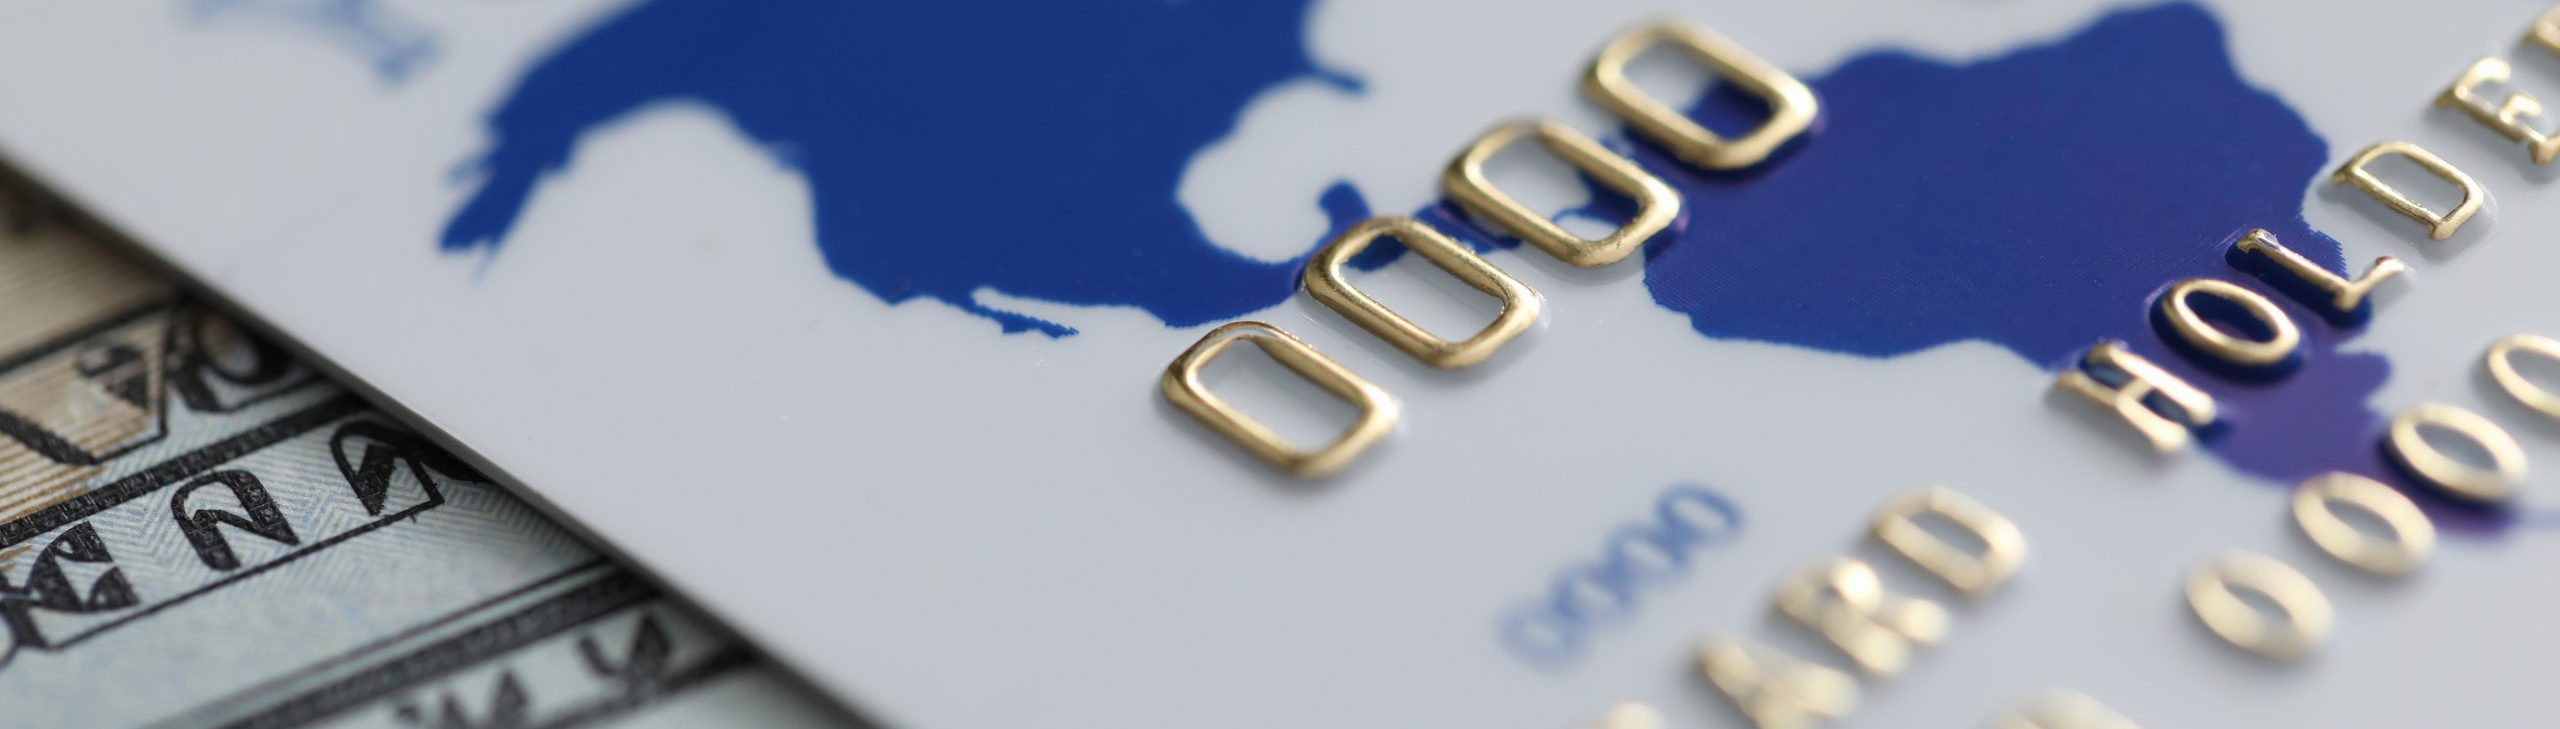 closeup of a credit card and American currency